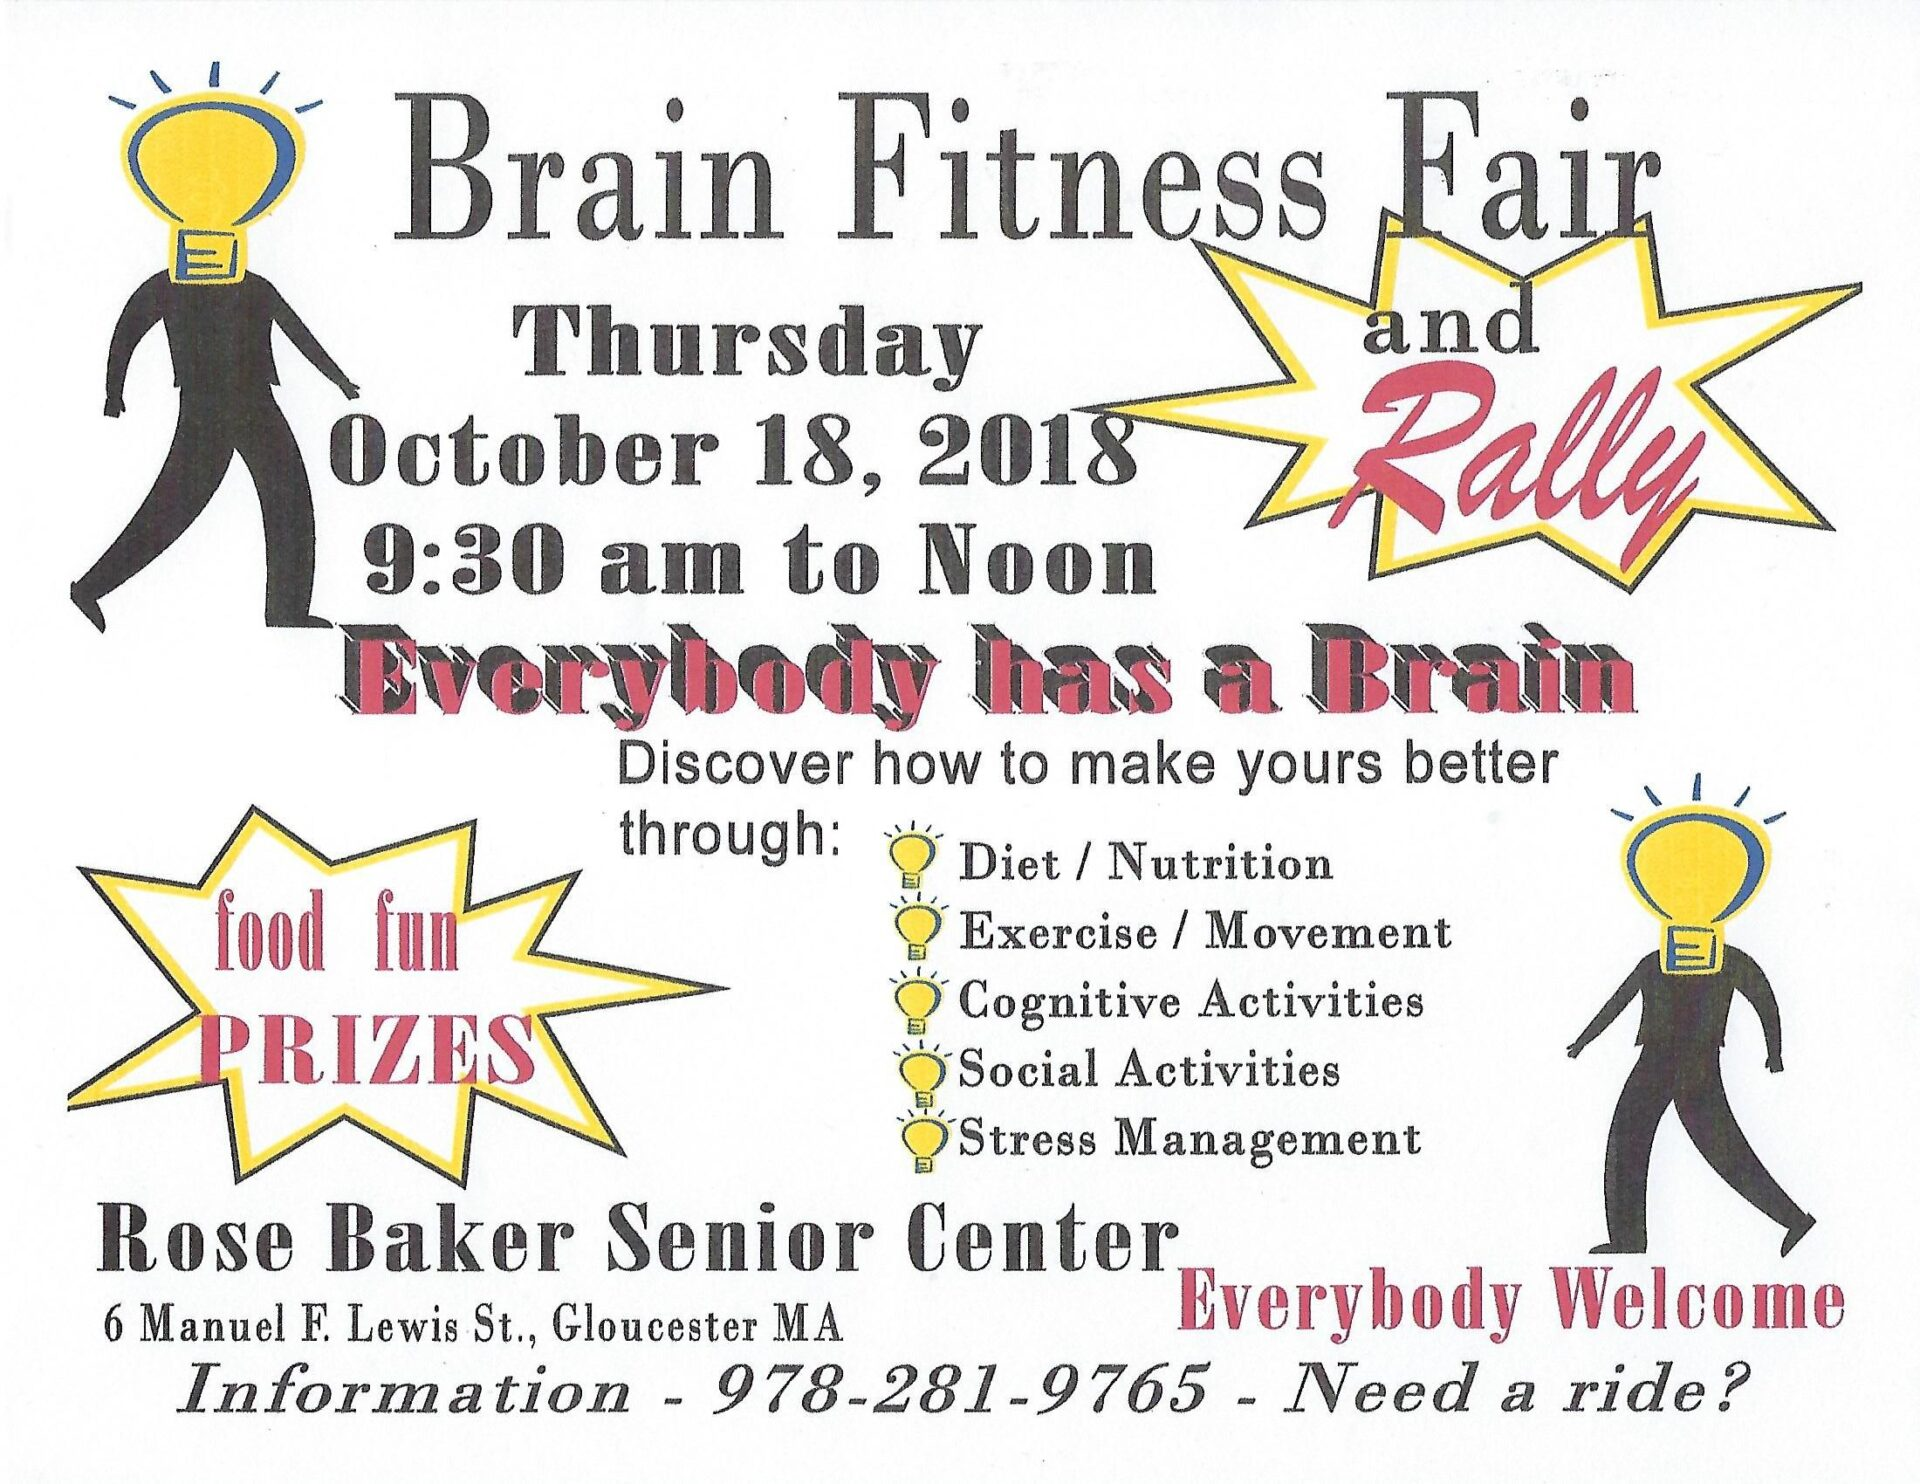 Brain Fitness Fair & Rally:  Hear the Fun! @ Rose Baker Senior Center | Gloucester | Massachusetts | United States